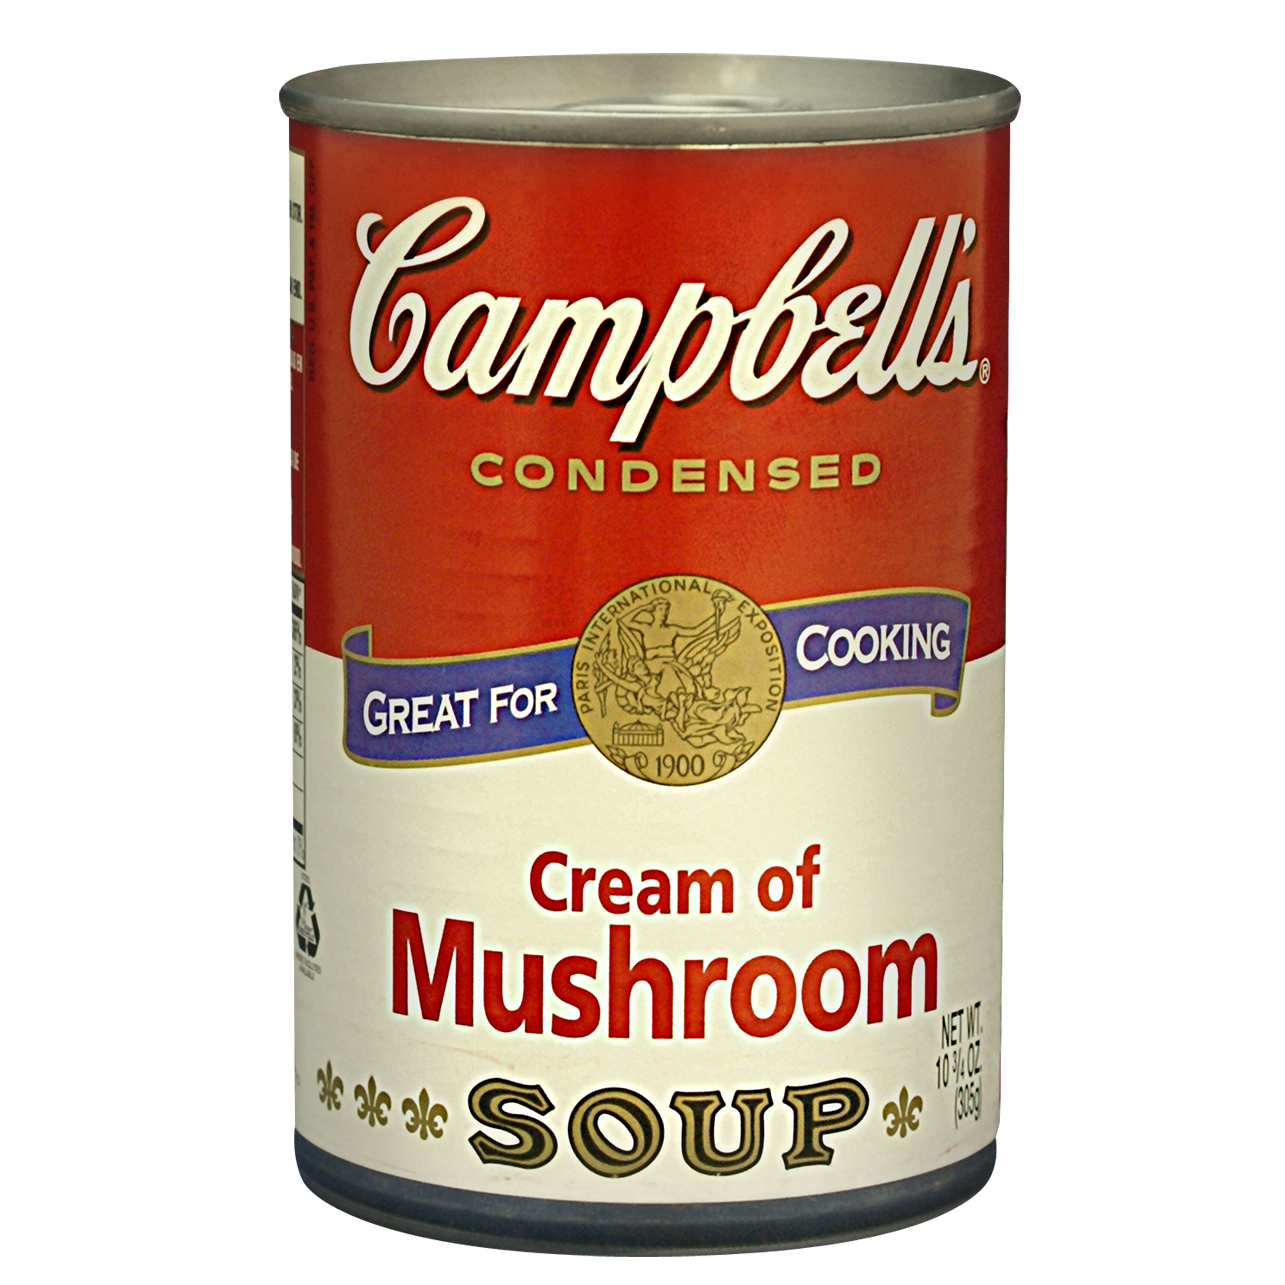 Canned Goods Soup Prepared Meals Campbell S Cream